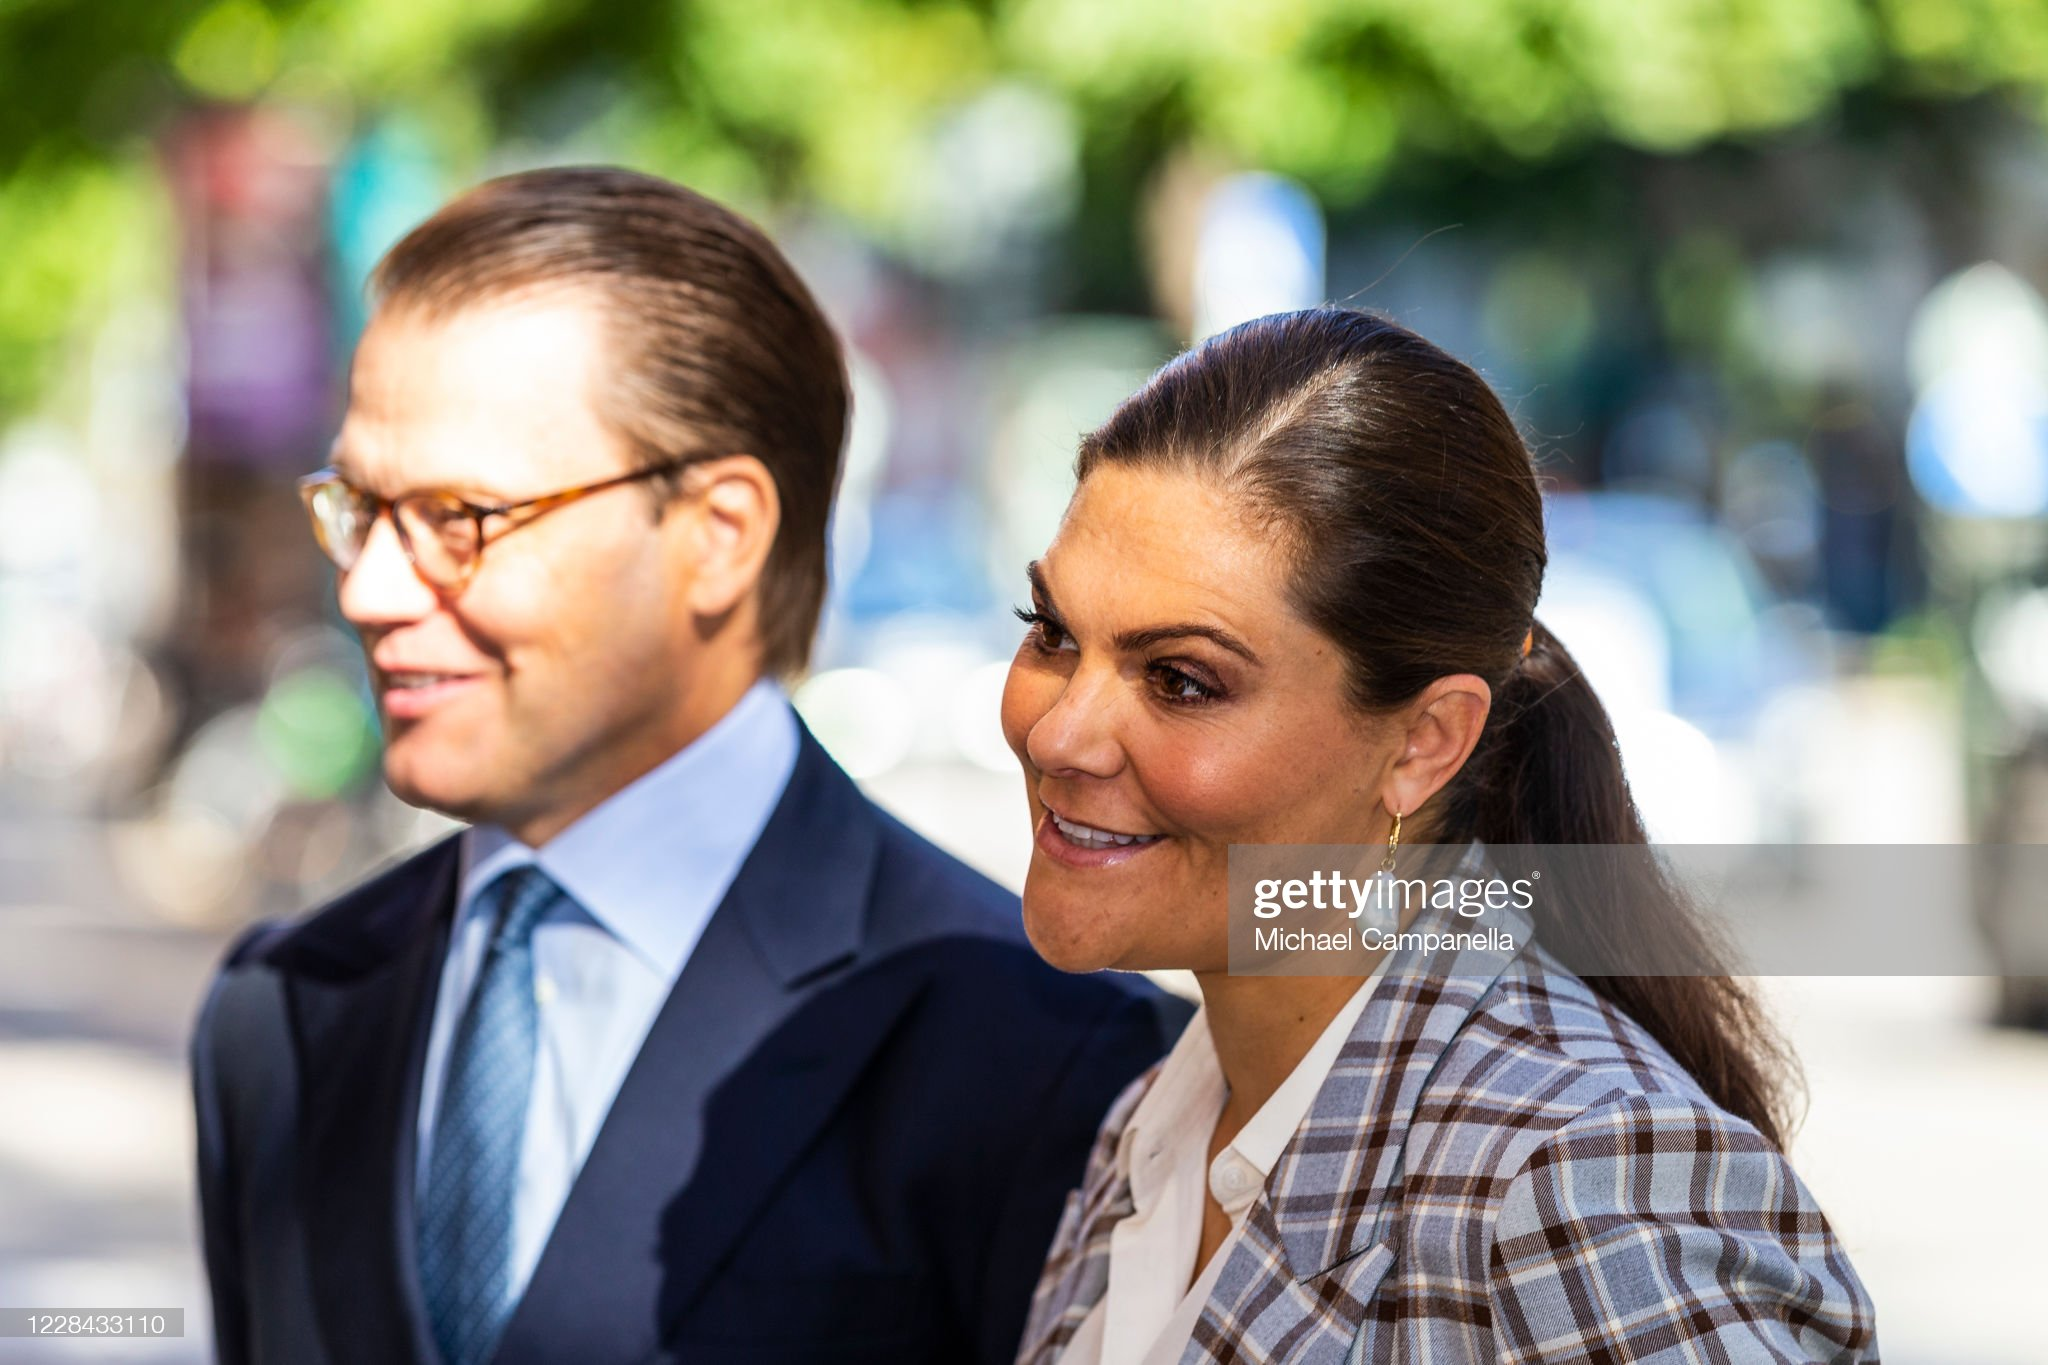 crown-princess-victoria-and-prince-daniel-of-sweden-visit-the-swedish-picture-id1228433110